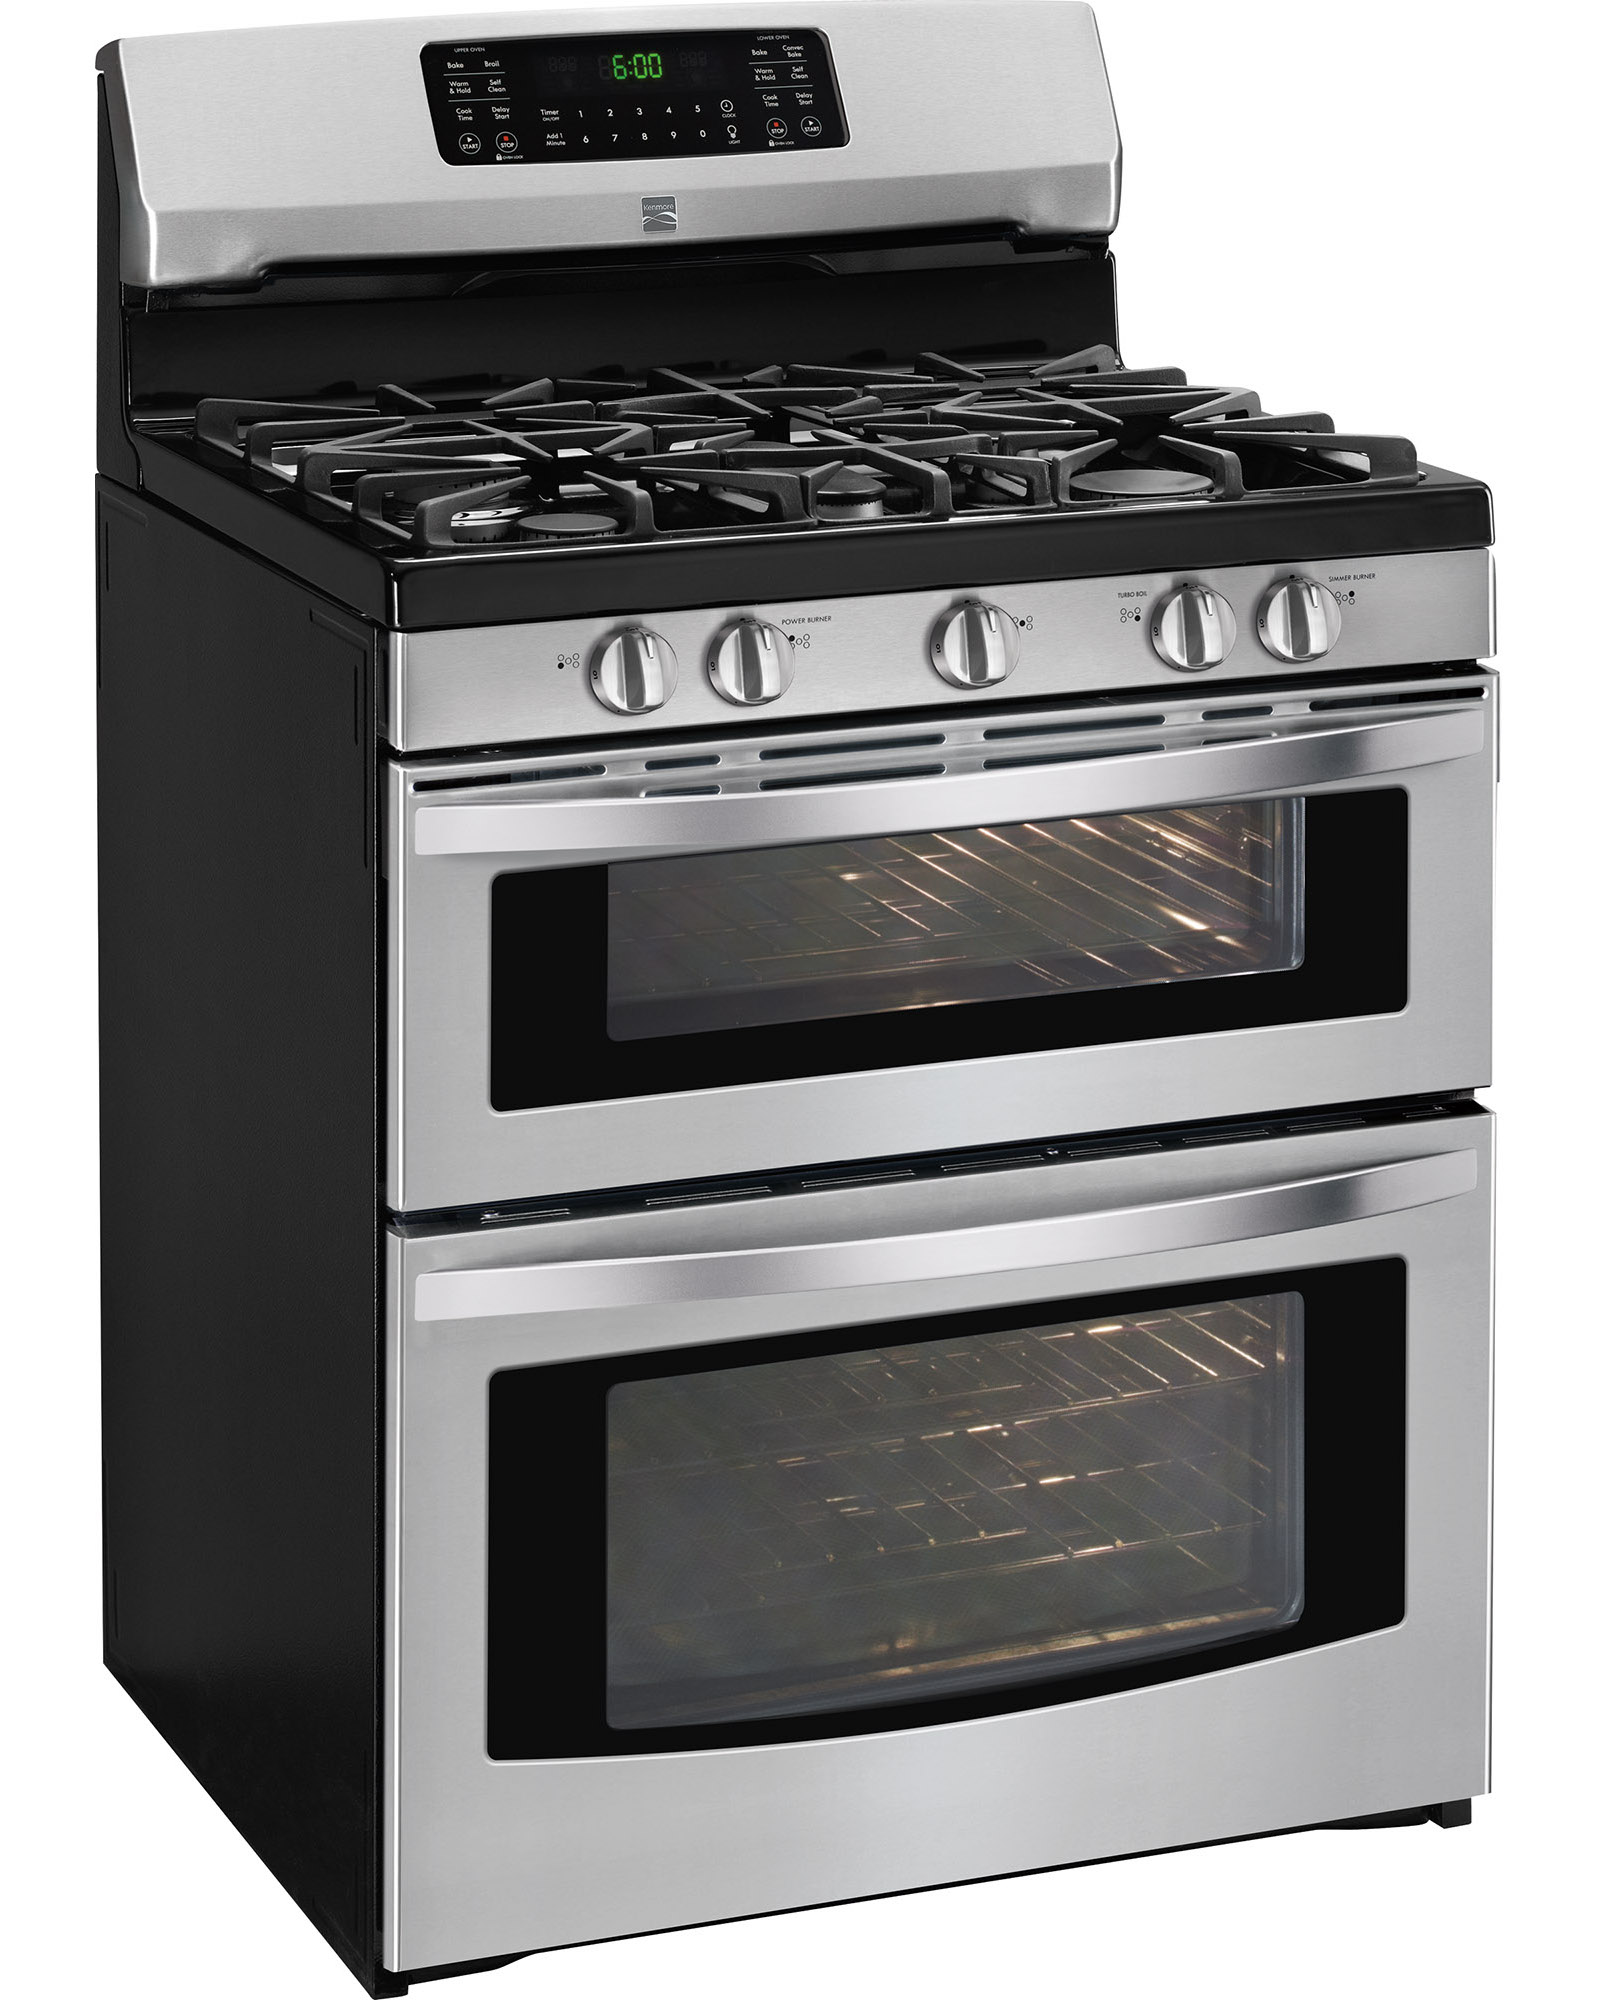 Kenmore 78043 5.9 cu. ft. Double-Oven Gas Range - Stainless Steel